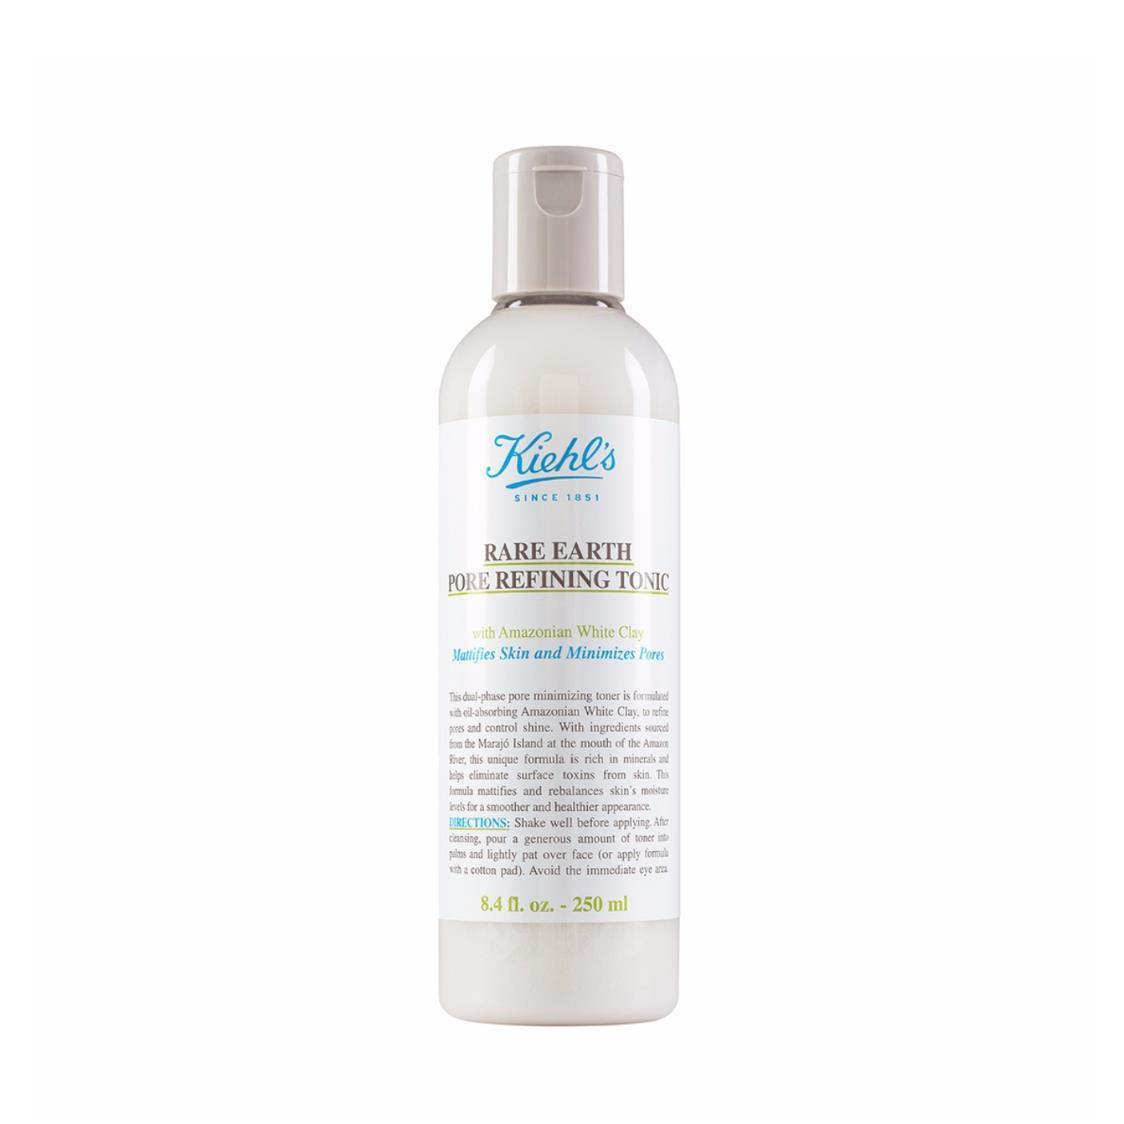 Rare Earth Pore Refining Tonic 250ml